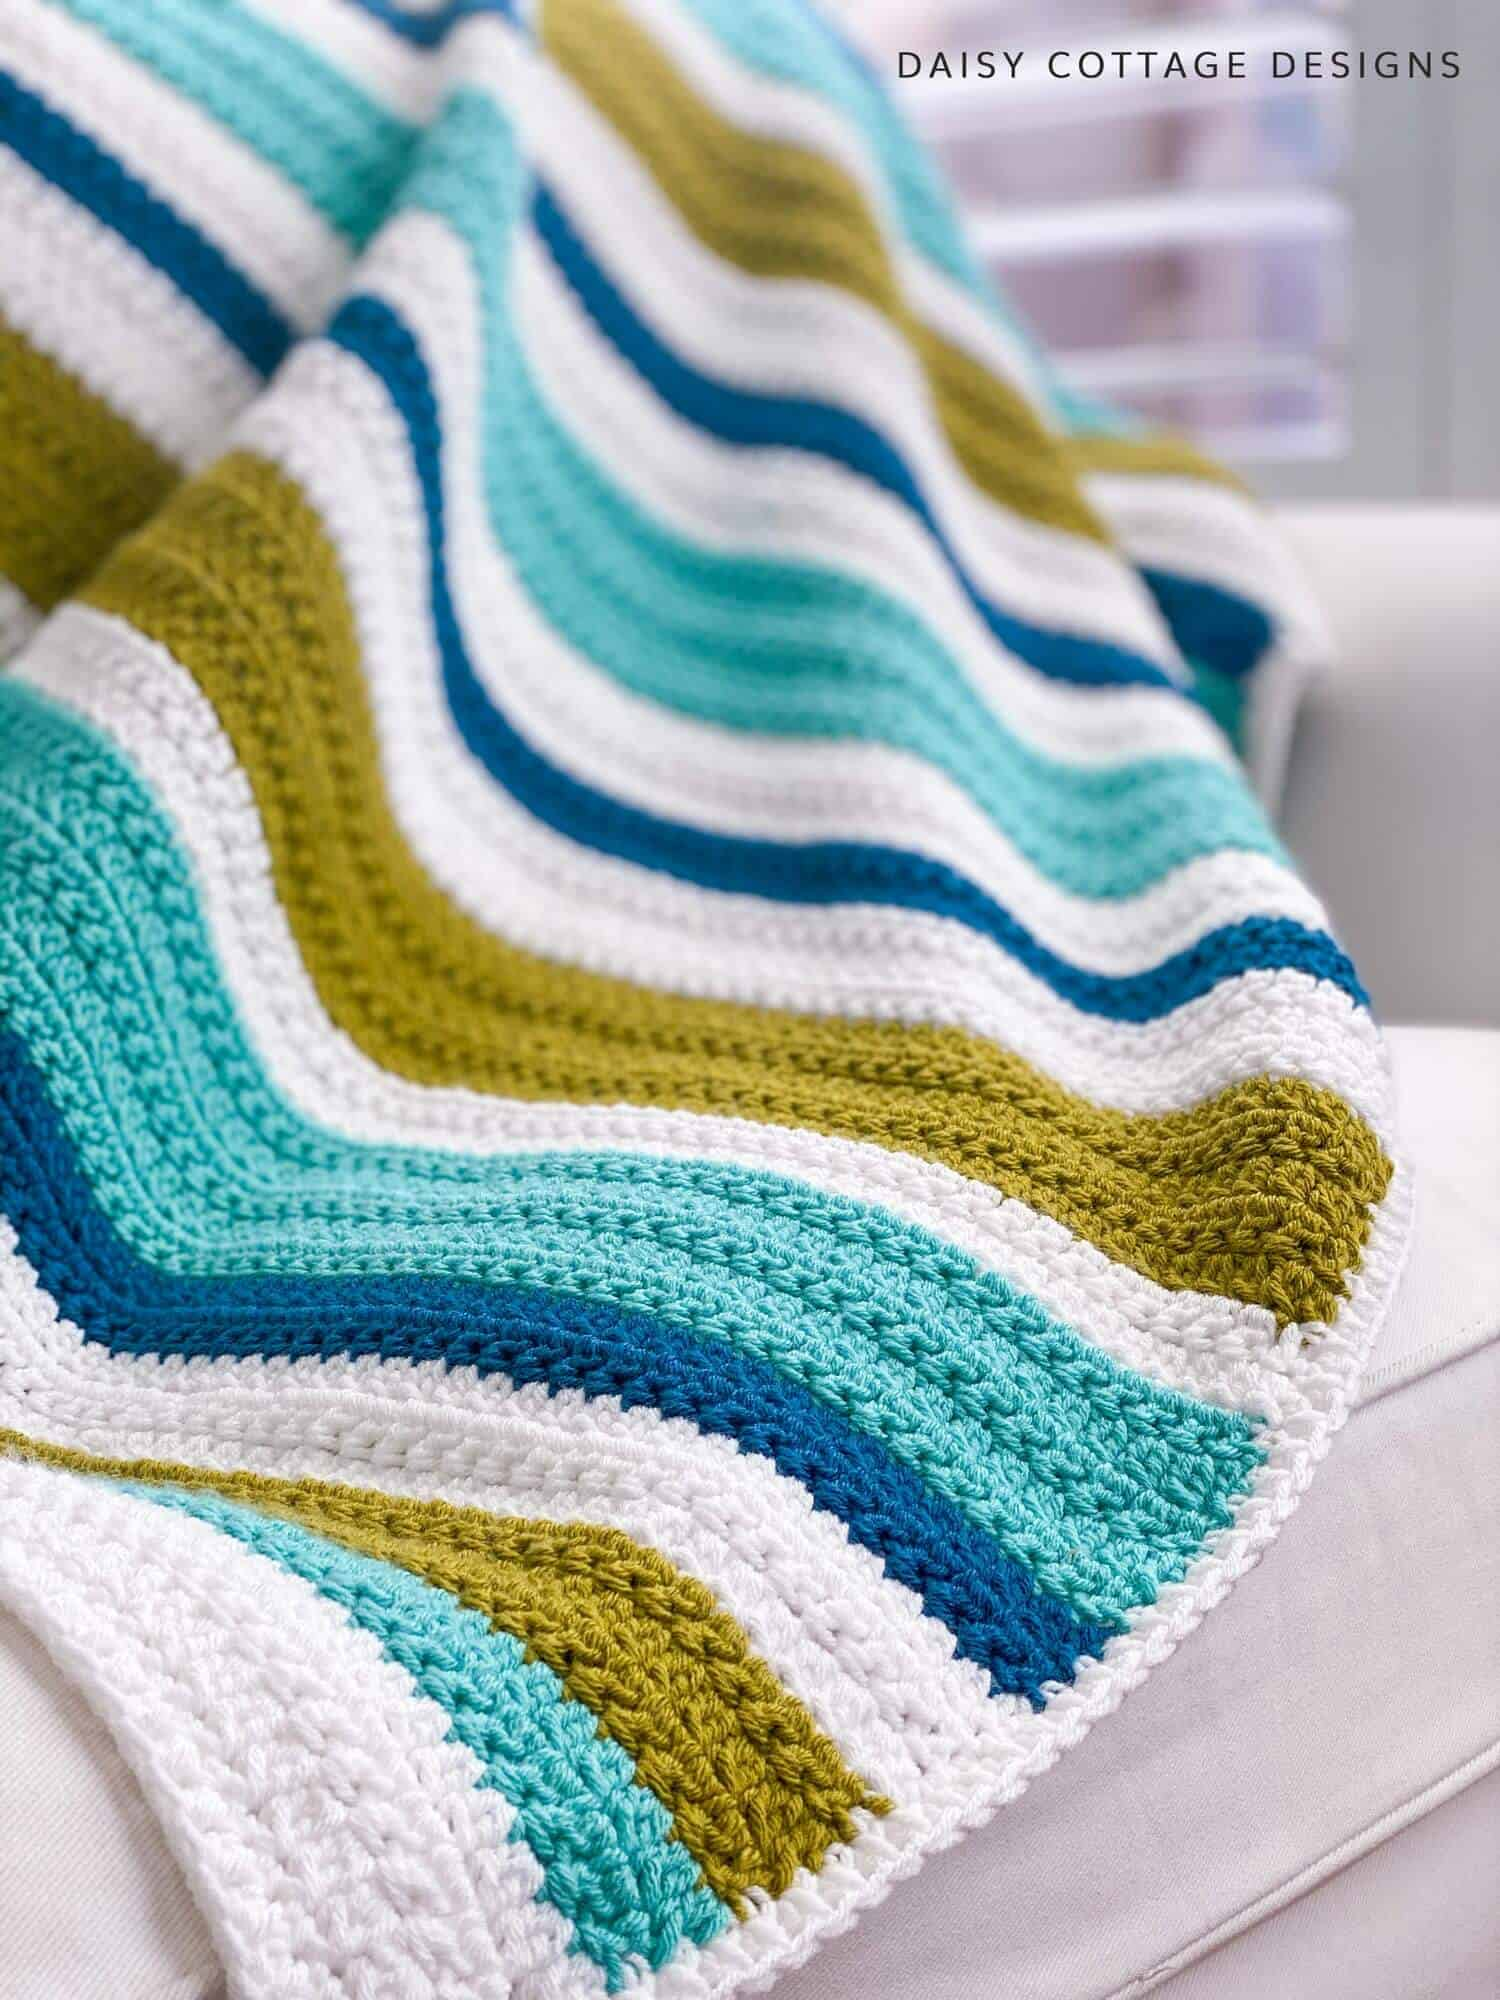 This blanket pattern features a beautiful, textured crochet stitch that's easy to make and yields stunning results.